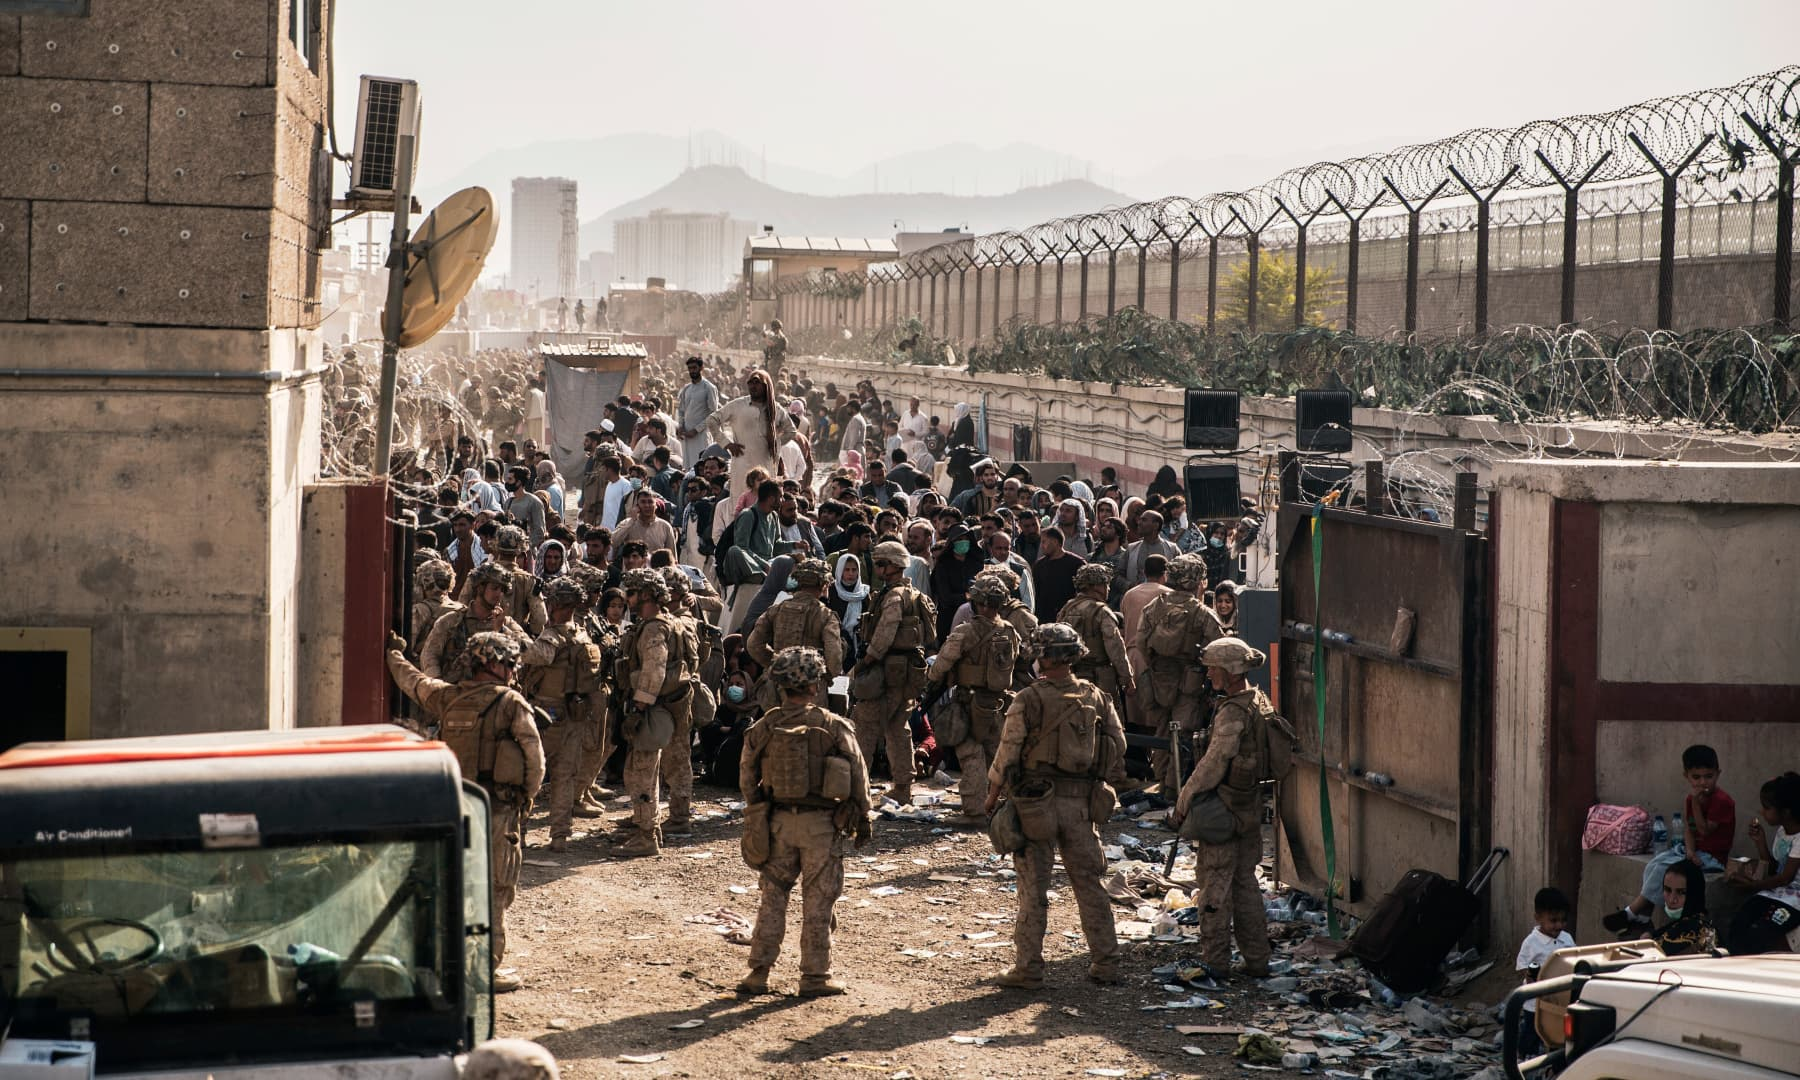 US Marines with Special Purpose Marine Air-Ground Task Force - Crisis Response - Central Command, provide assistance at an evacuation control checkpoint during an evacuation at Hamid Karzai International Airport in Kabul, Afghanistan on August 21, 2021. — AP